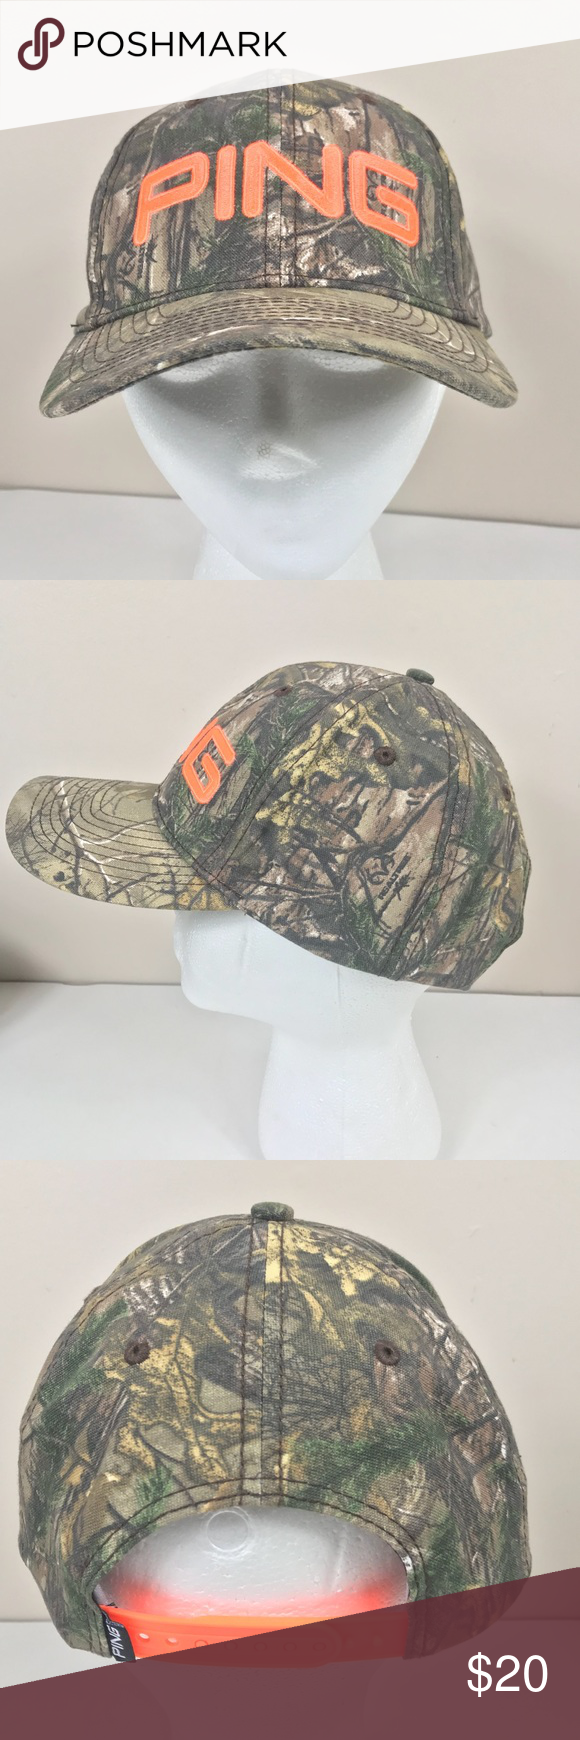 PING Camo Blaze Neon Orange Adjustable Golf Hat Check out my other listings  for great deals 9de5ae89c8c